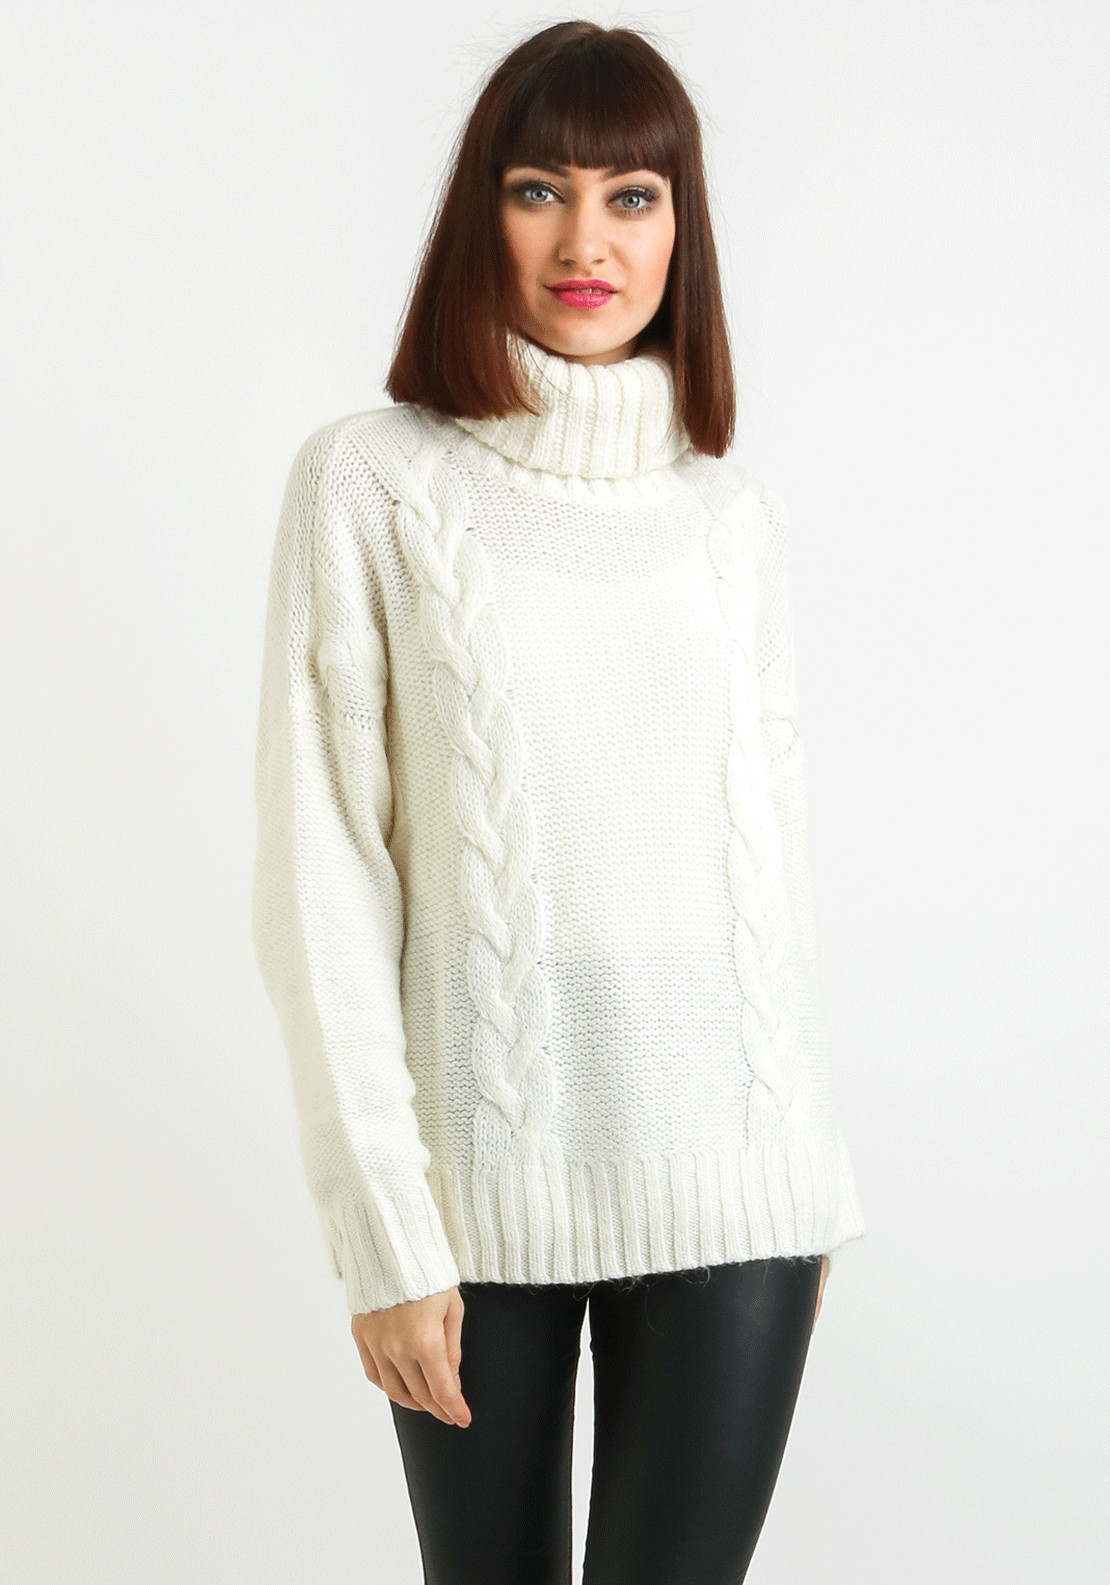 fa1536ed47c276 Only Rogue Roll Neck Knit Jumper, Cream. Be the first to review this product